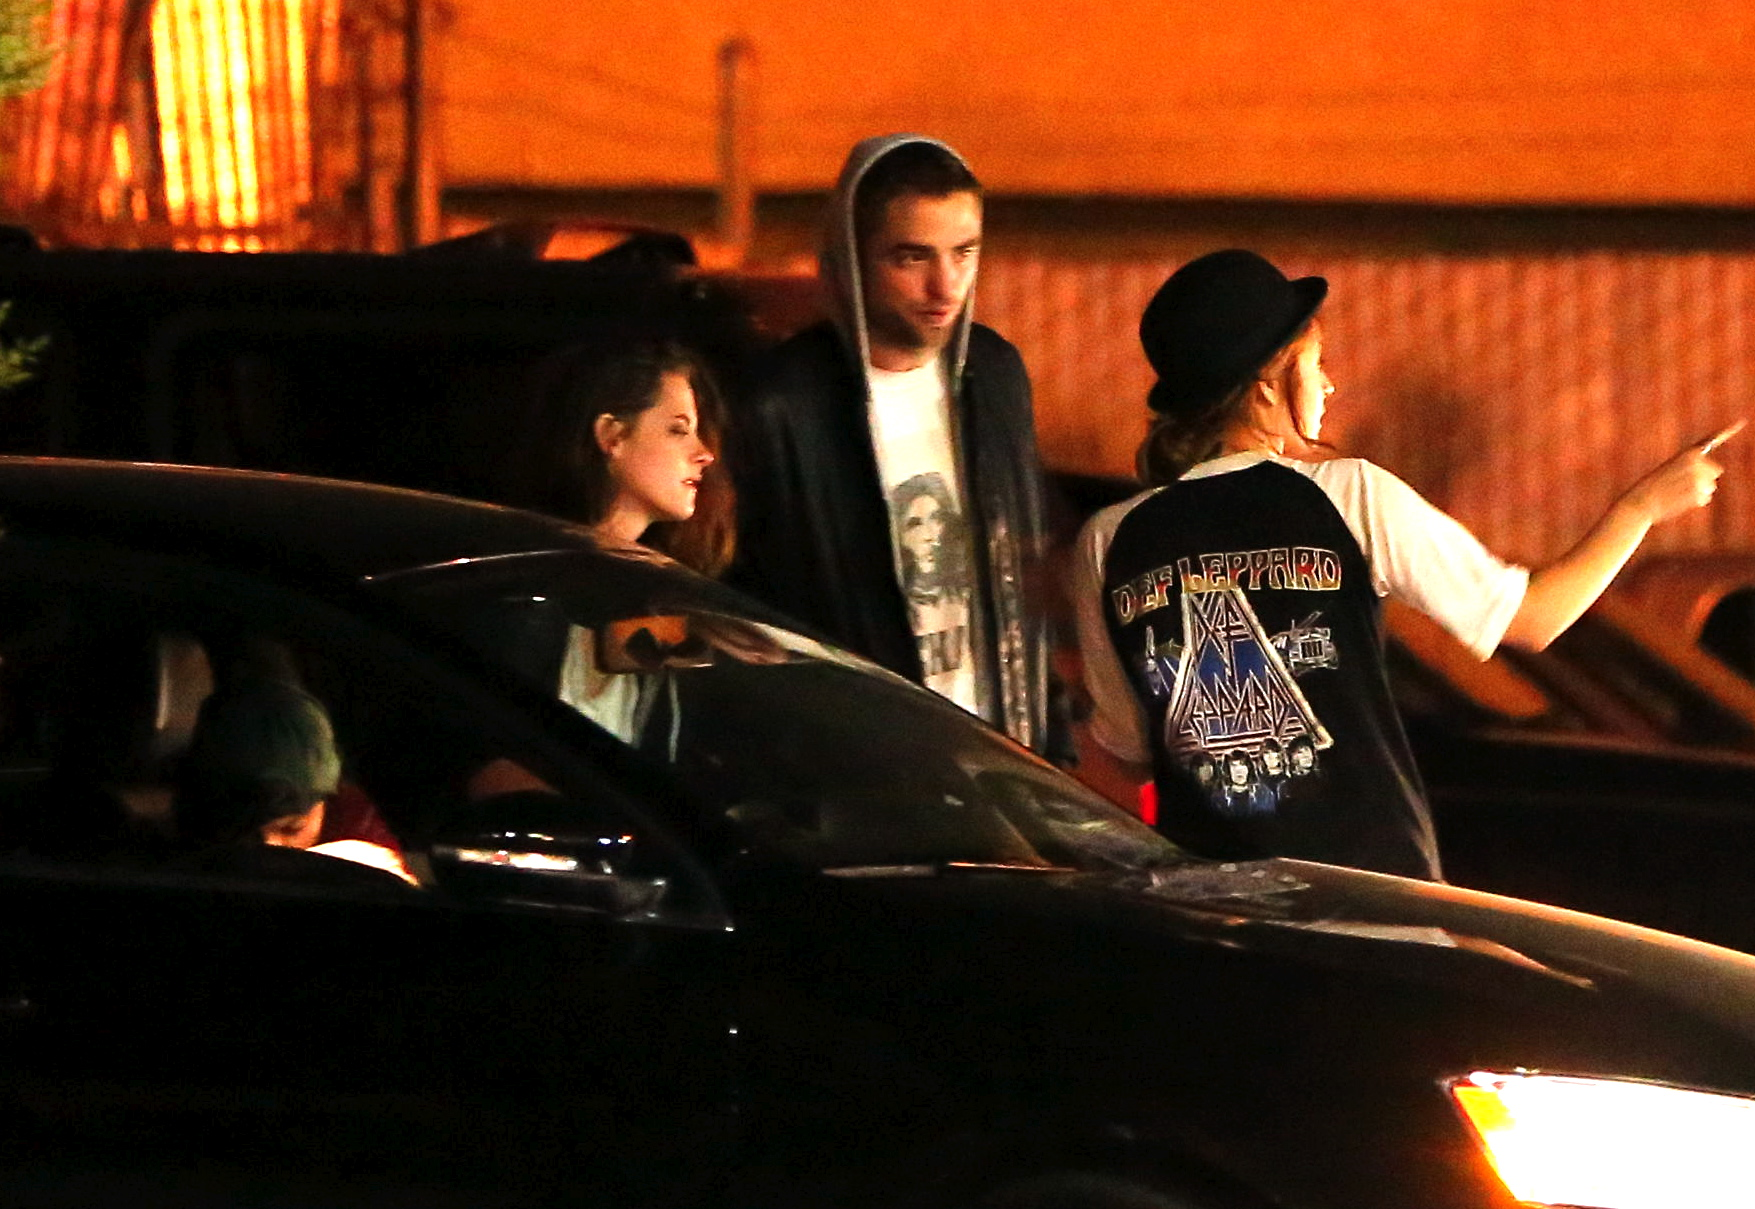 Kristen Stewart and Robert Pattinson celebrated her 23rd birthday.